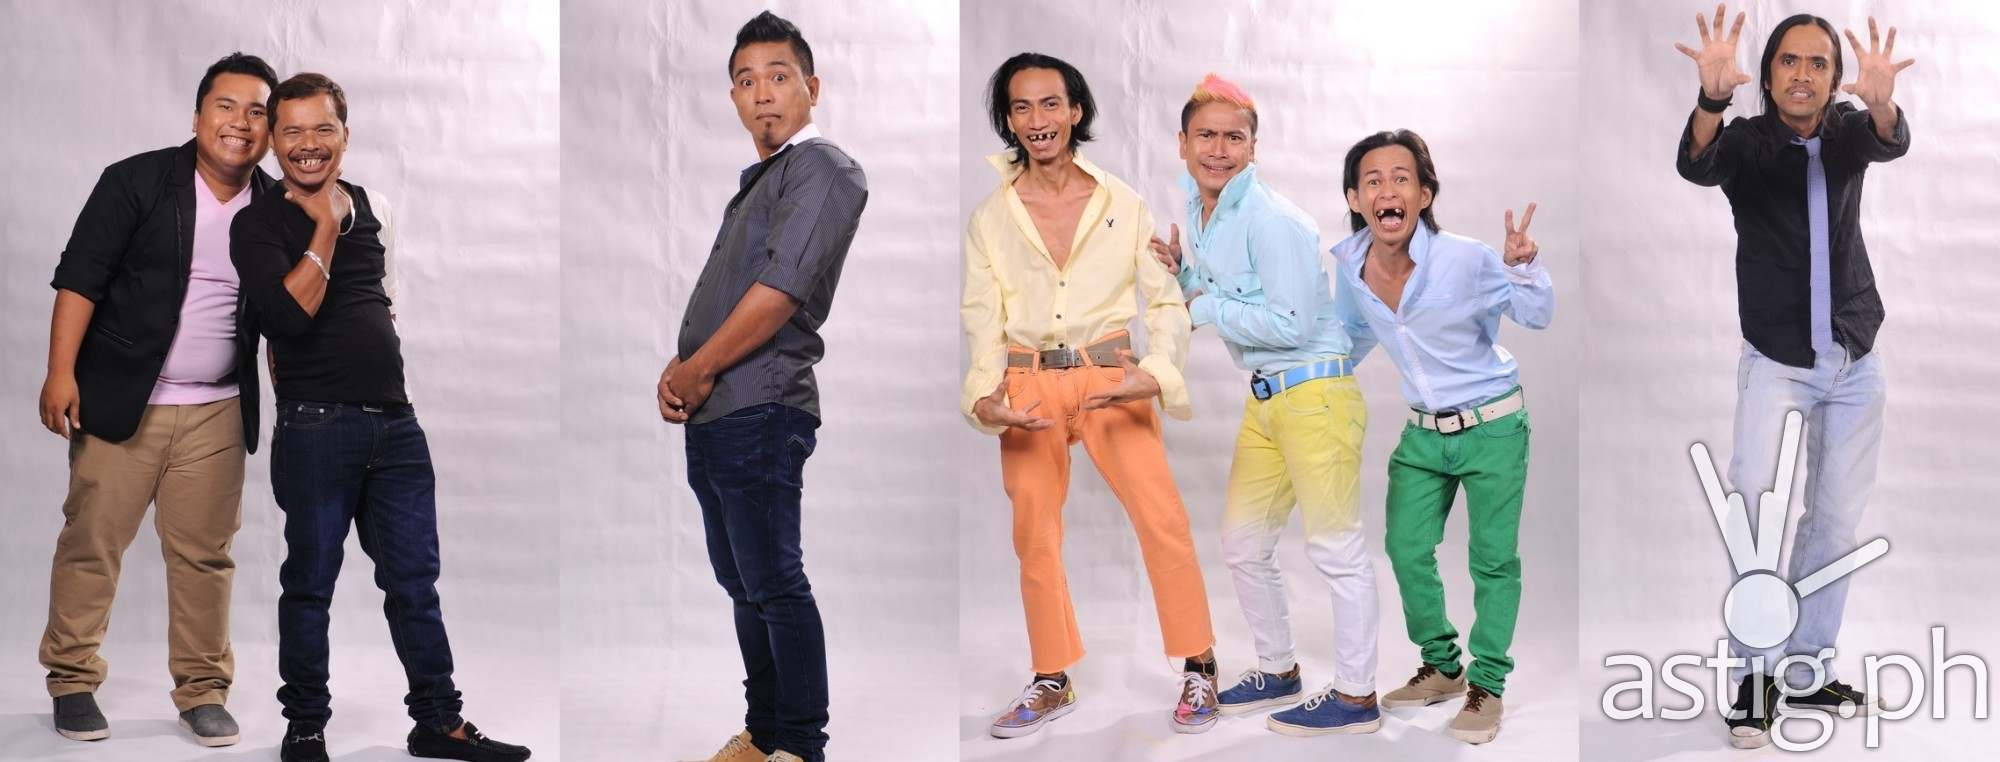 It's Showtime FUNNY ONE Final Four---Crazy Duo, Gibis Alejandrino, No Direction, Ryan Rems Sarita